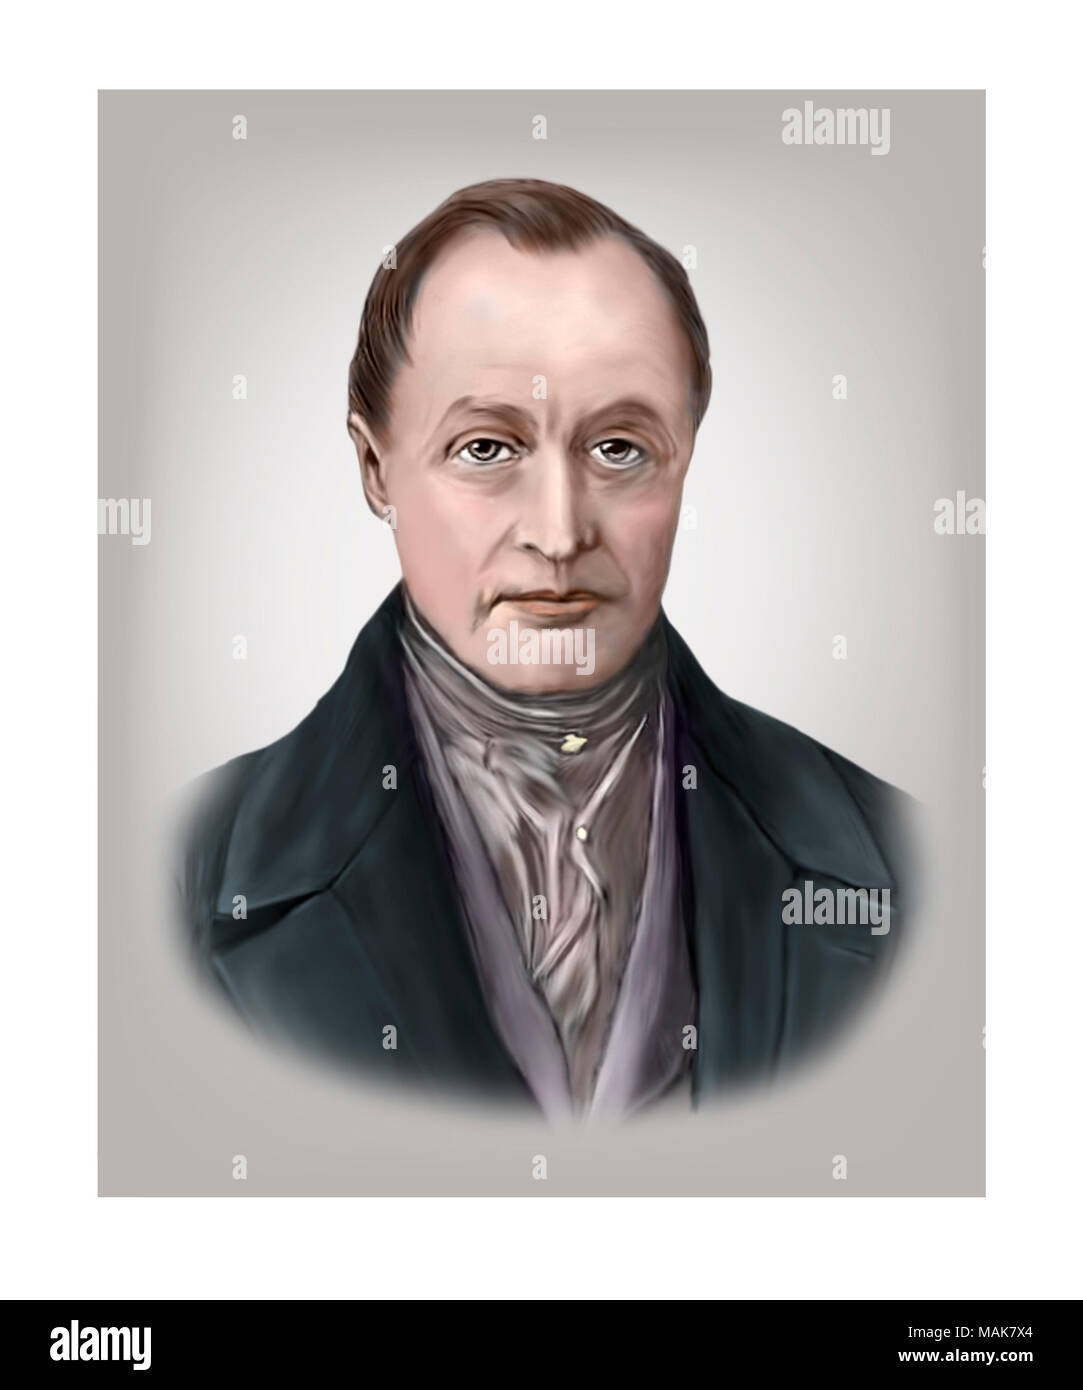 Auguste Comte, 1798 - 1857, French Philosopher - Stock Image